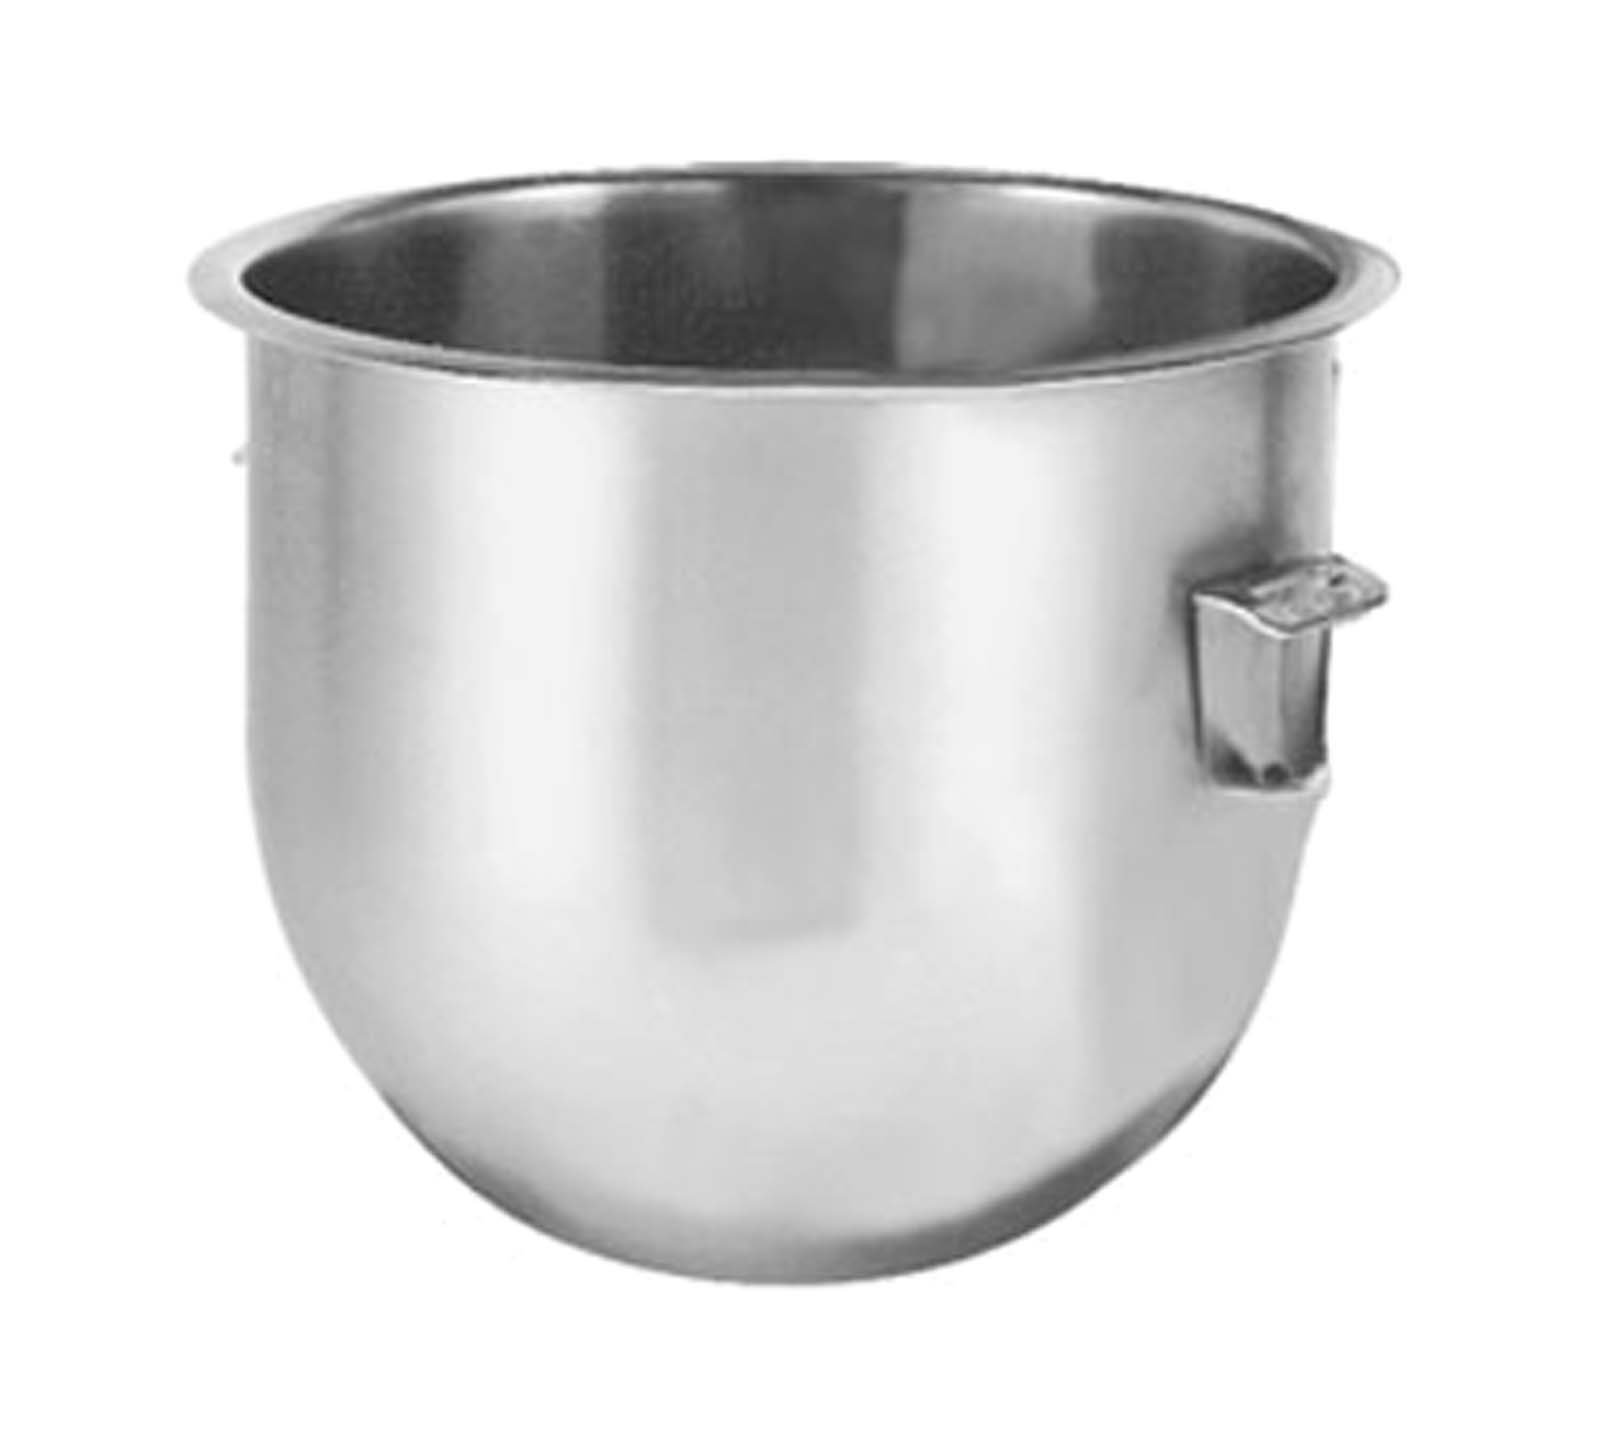 Hobart BOWL-SST005 S/S 5 Qt Bowl for N50 Mixer